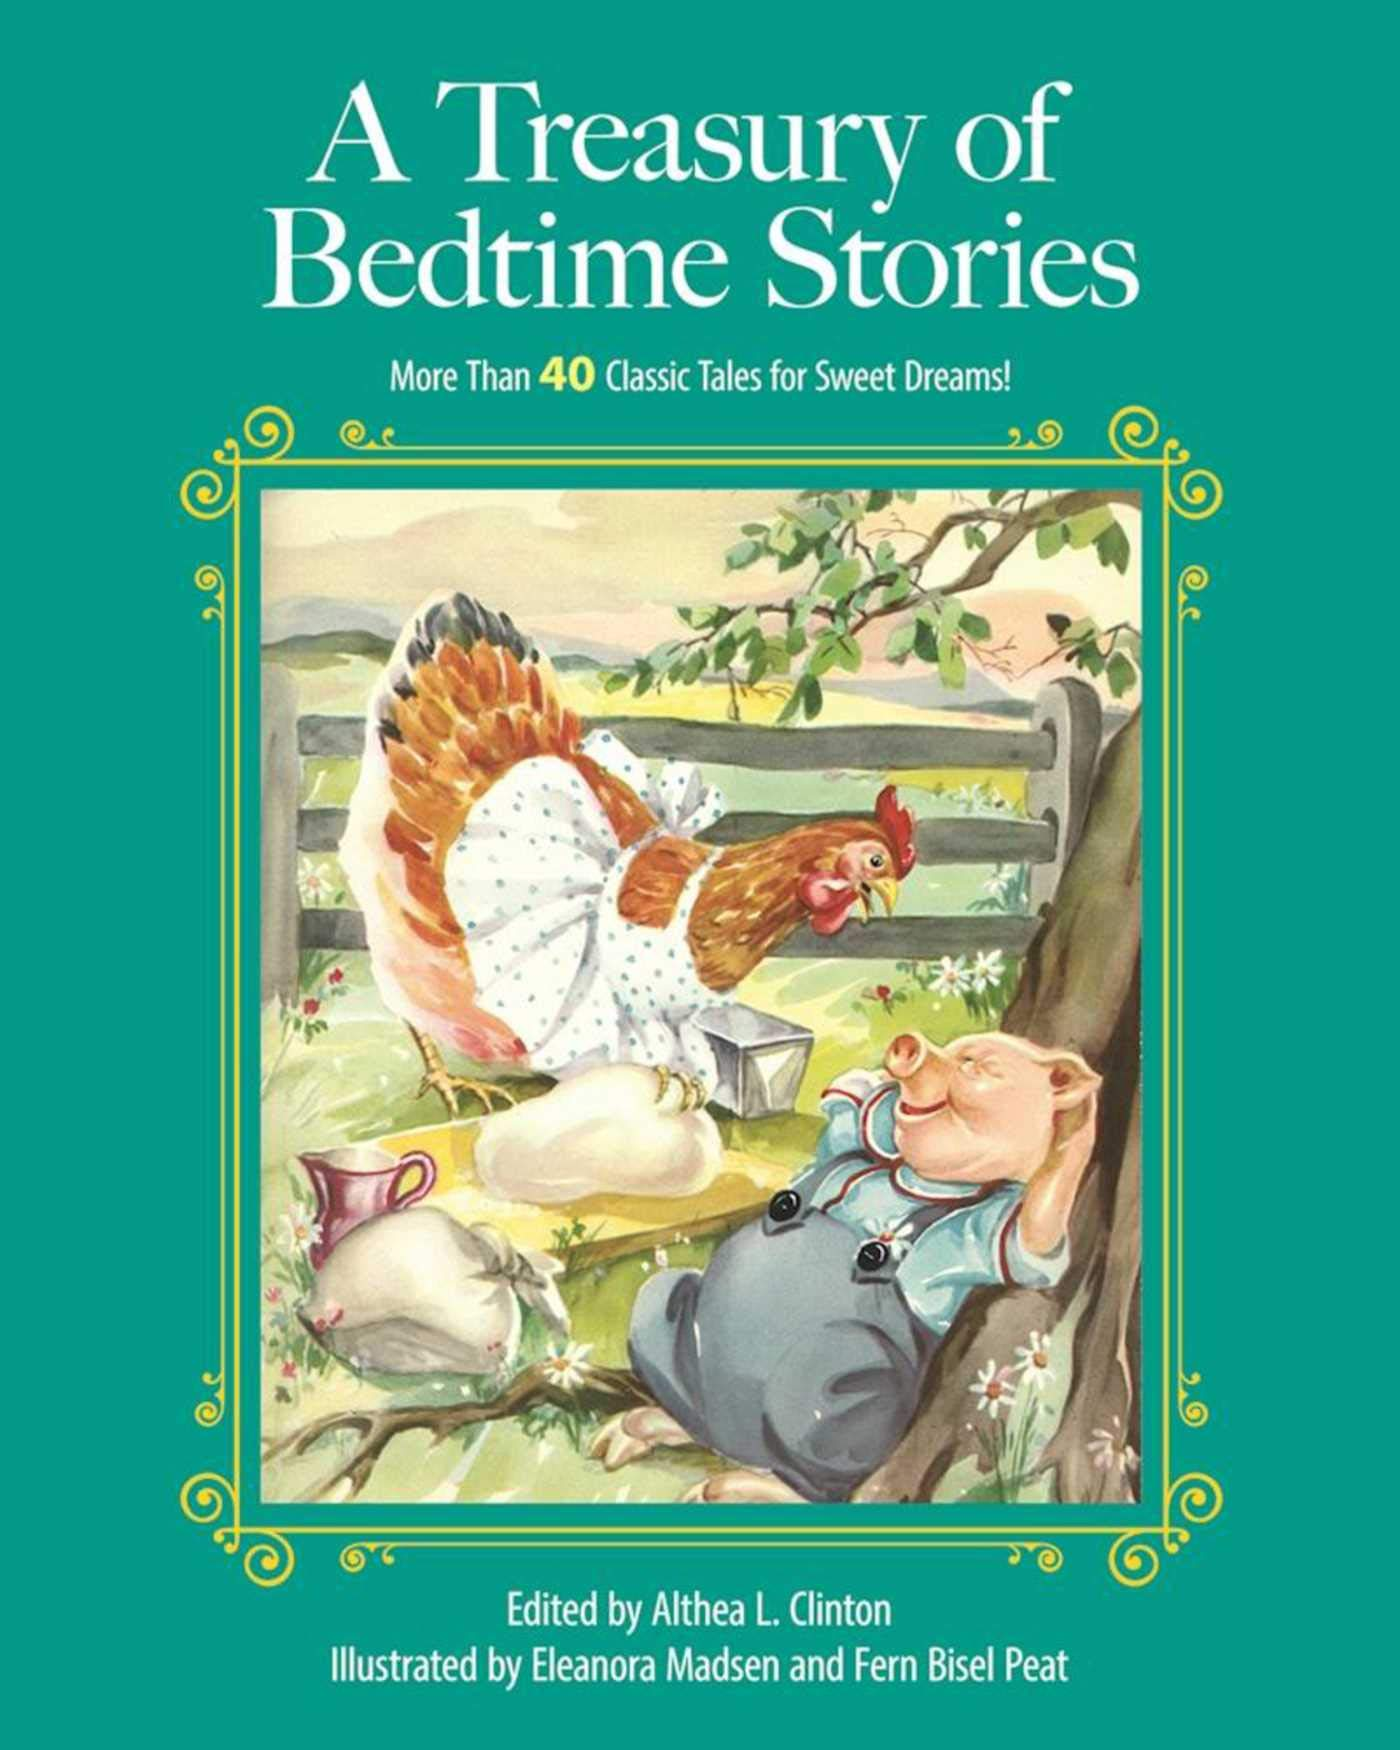 A Treasury of Bedtime Stories  More than 40 Classic Tales for Sweet Dreams!  (Children s Classic Collections) Hardcover – March 7 56fbca3a7